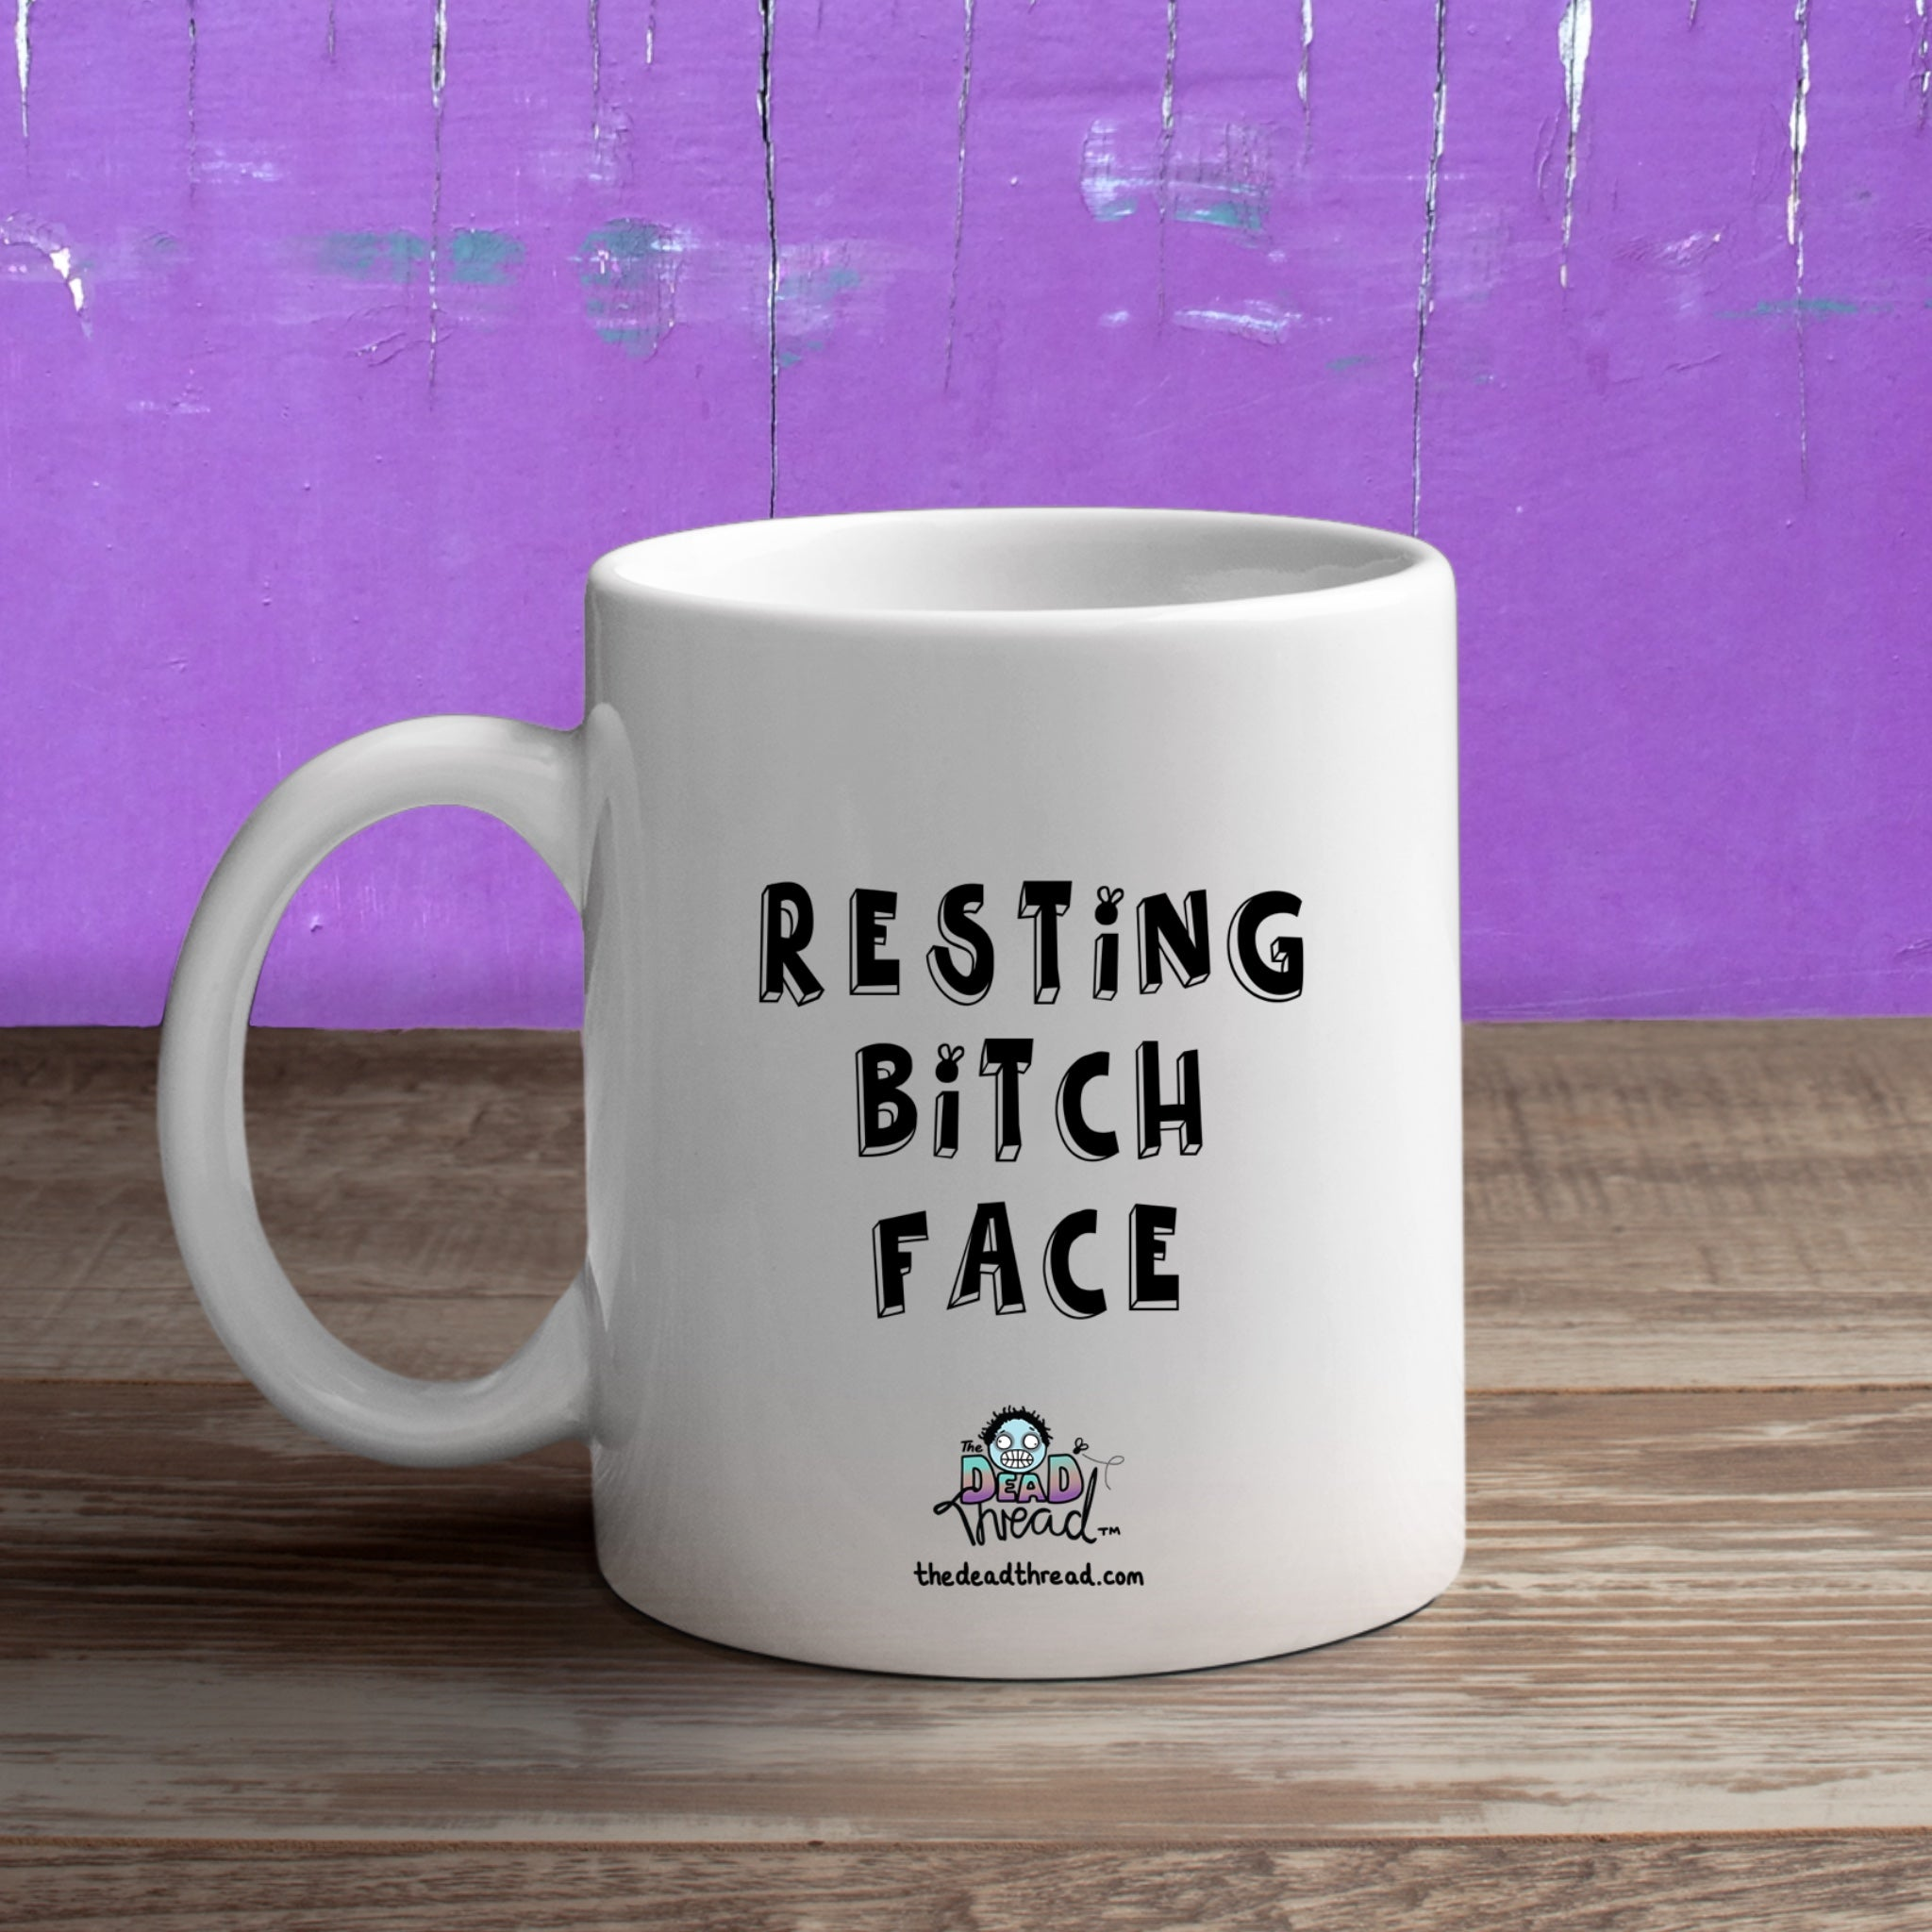 Resting Bitch Face (Male zombie) Mug from The Dead Thread™